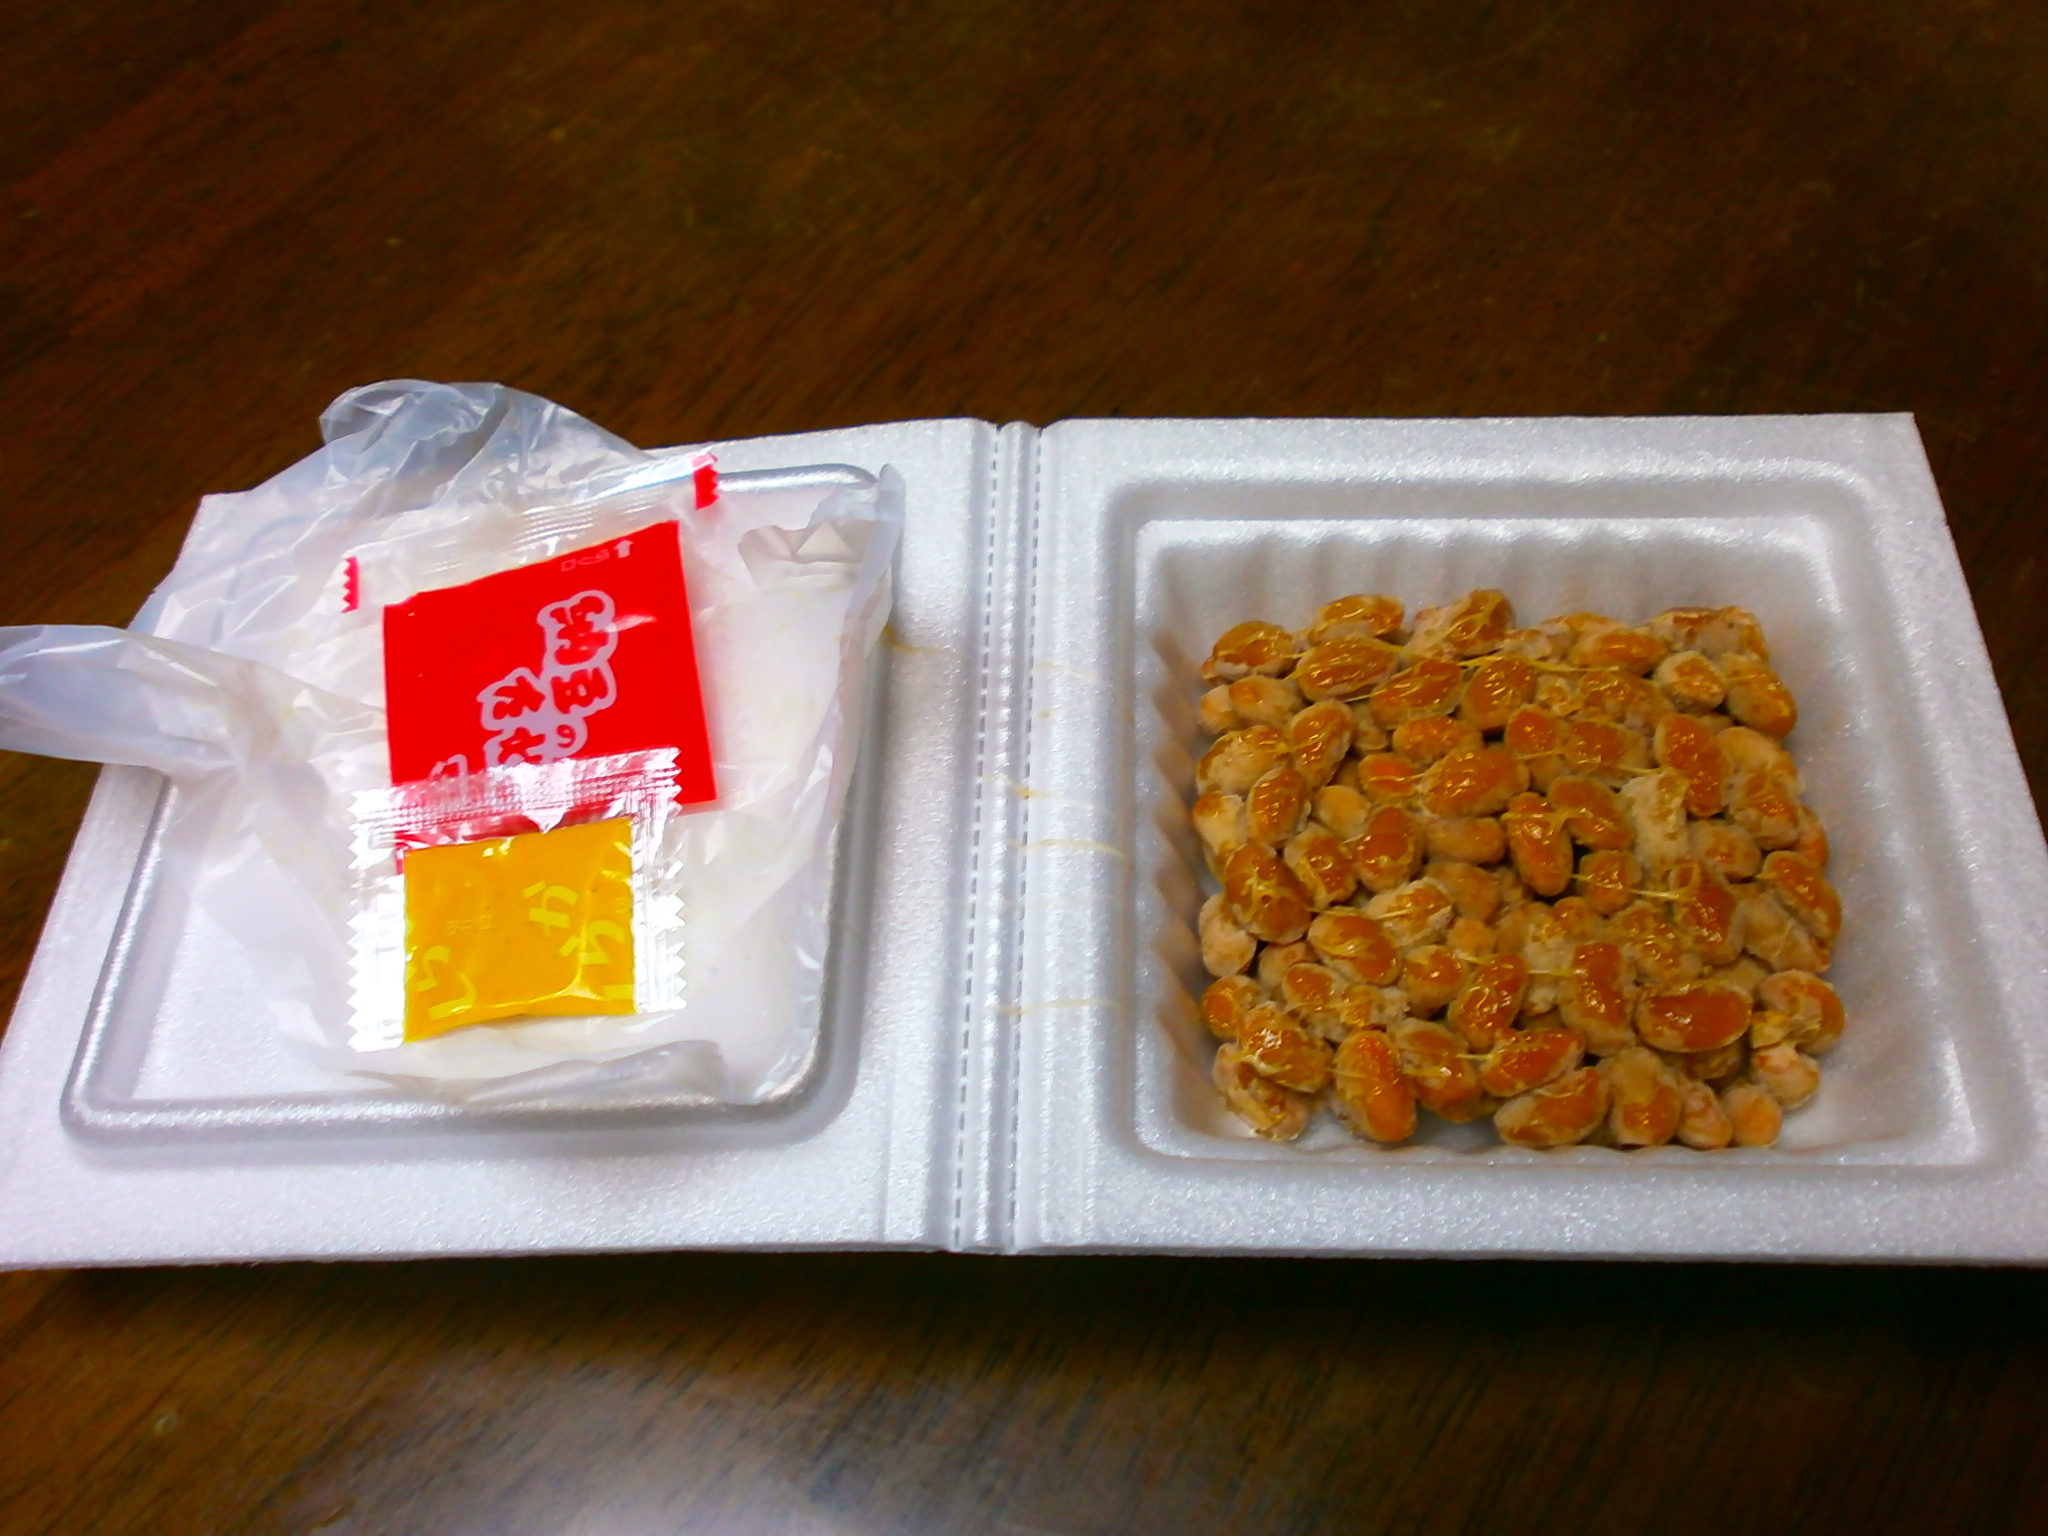 Which high-calorie? Natto? Sausage?